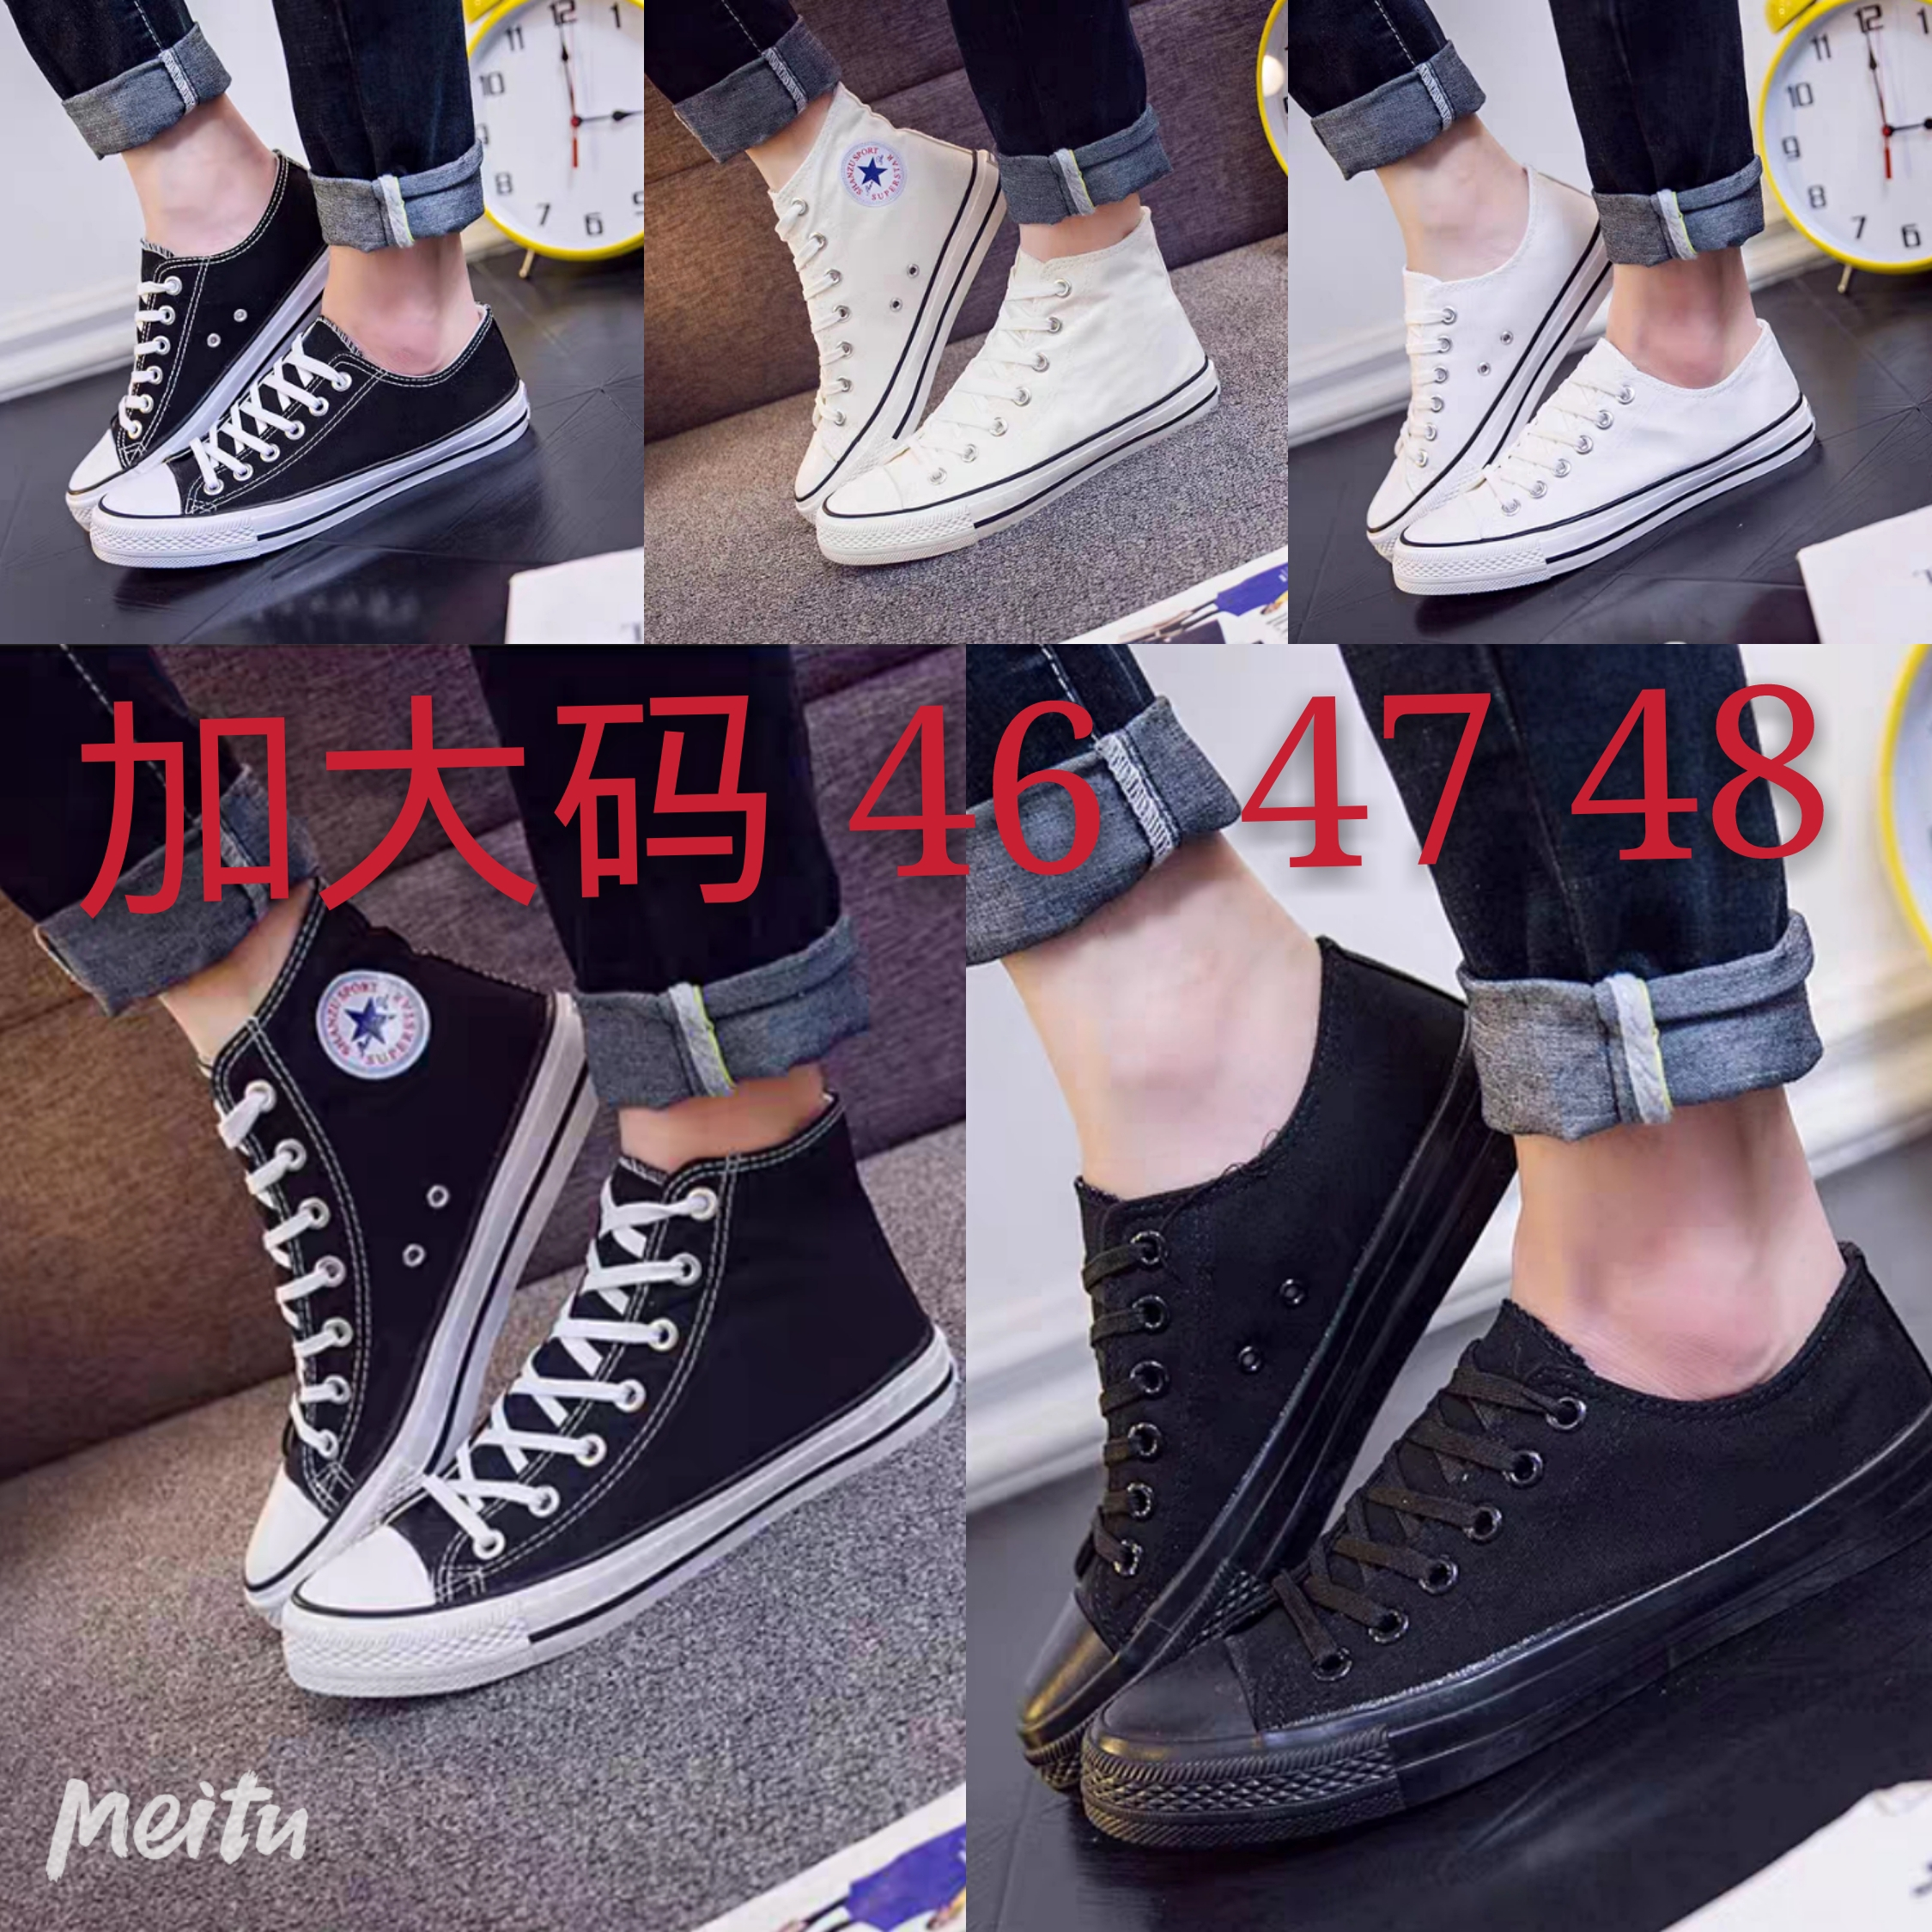 Oversize canvas shoes mens high top breathable casual shoes fashion mens shoes board shoes oversize 45 46 47 48